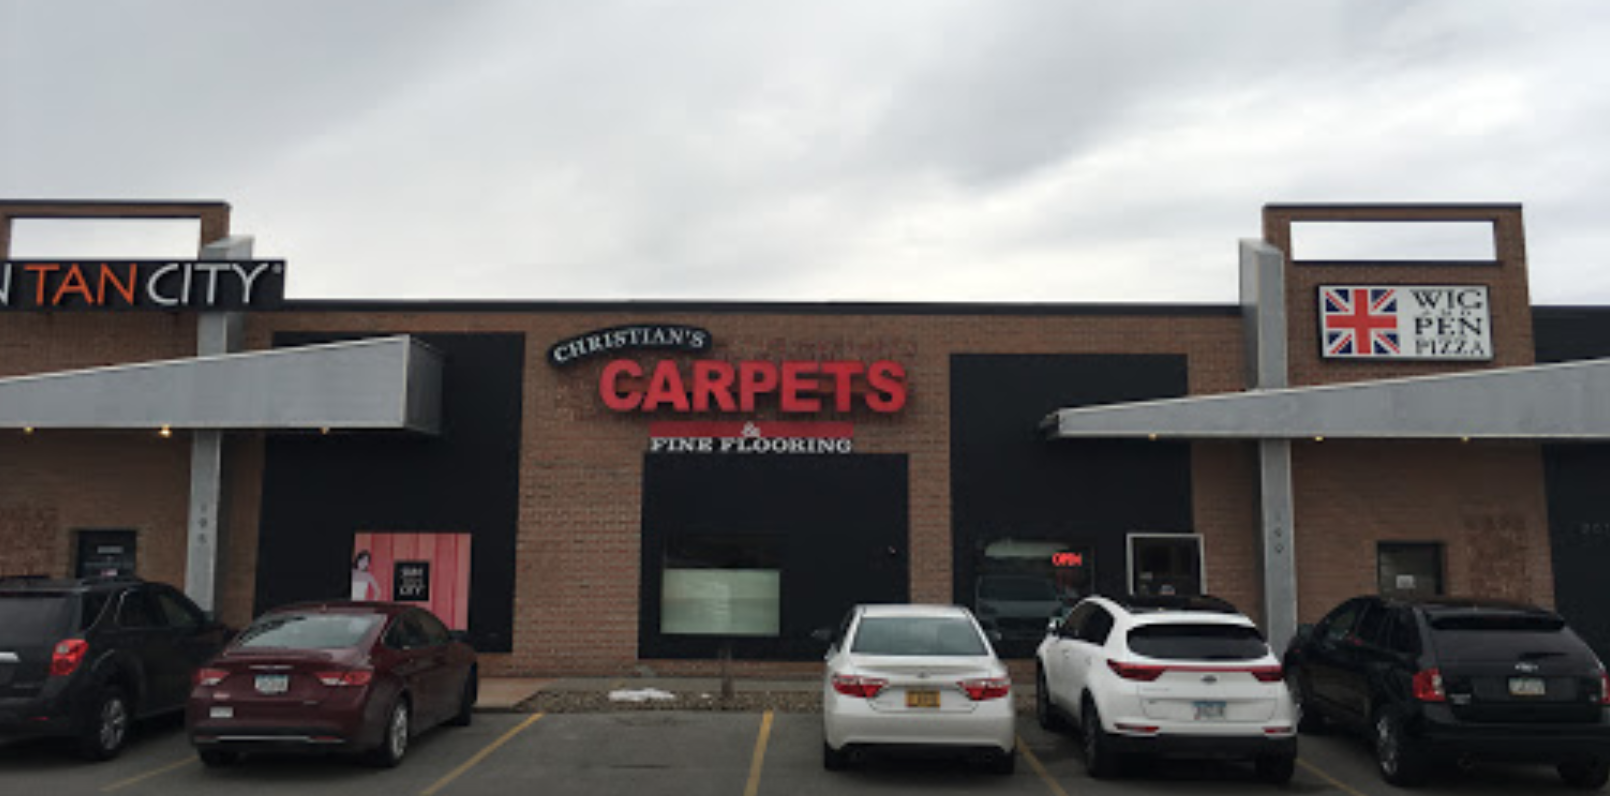 Christian's Carpets & Fine Flooring - 199 Hwy 965 NE, North Liberty, IA 52317